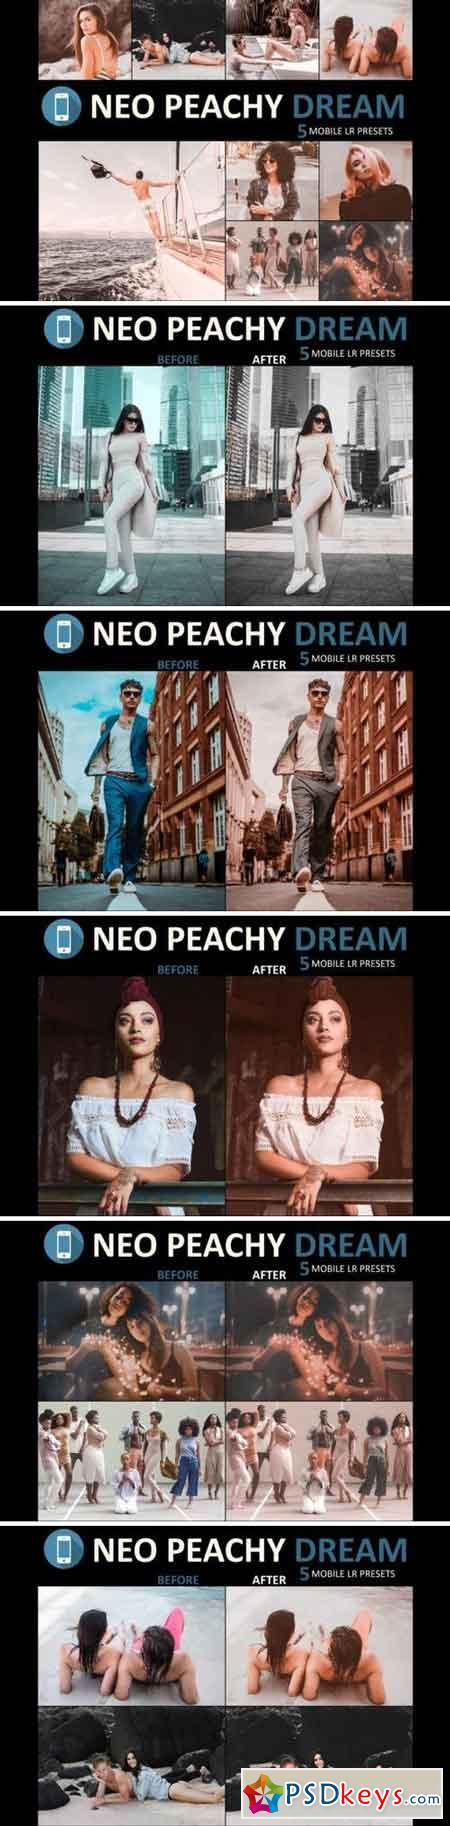 Neo Peachy Dream mobile lightroom presets